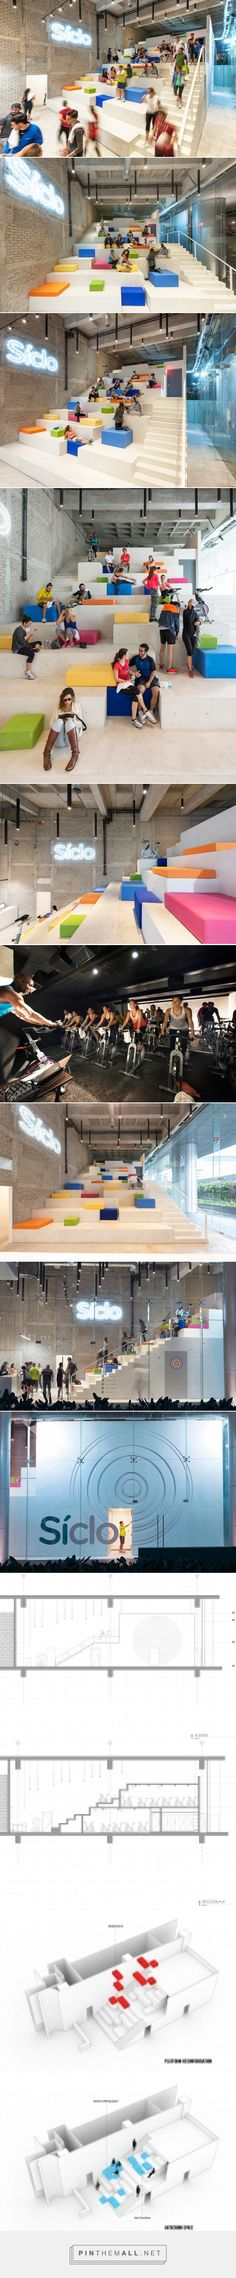 rojkind arquitectos + cadena y asociados reflects síclo's cycle concept with stepped interior - created via http://pinthemall.net